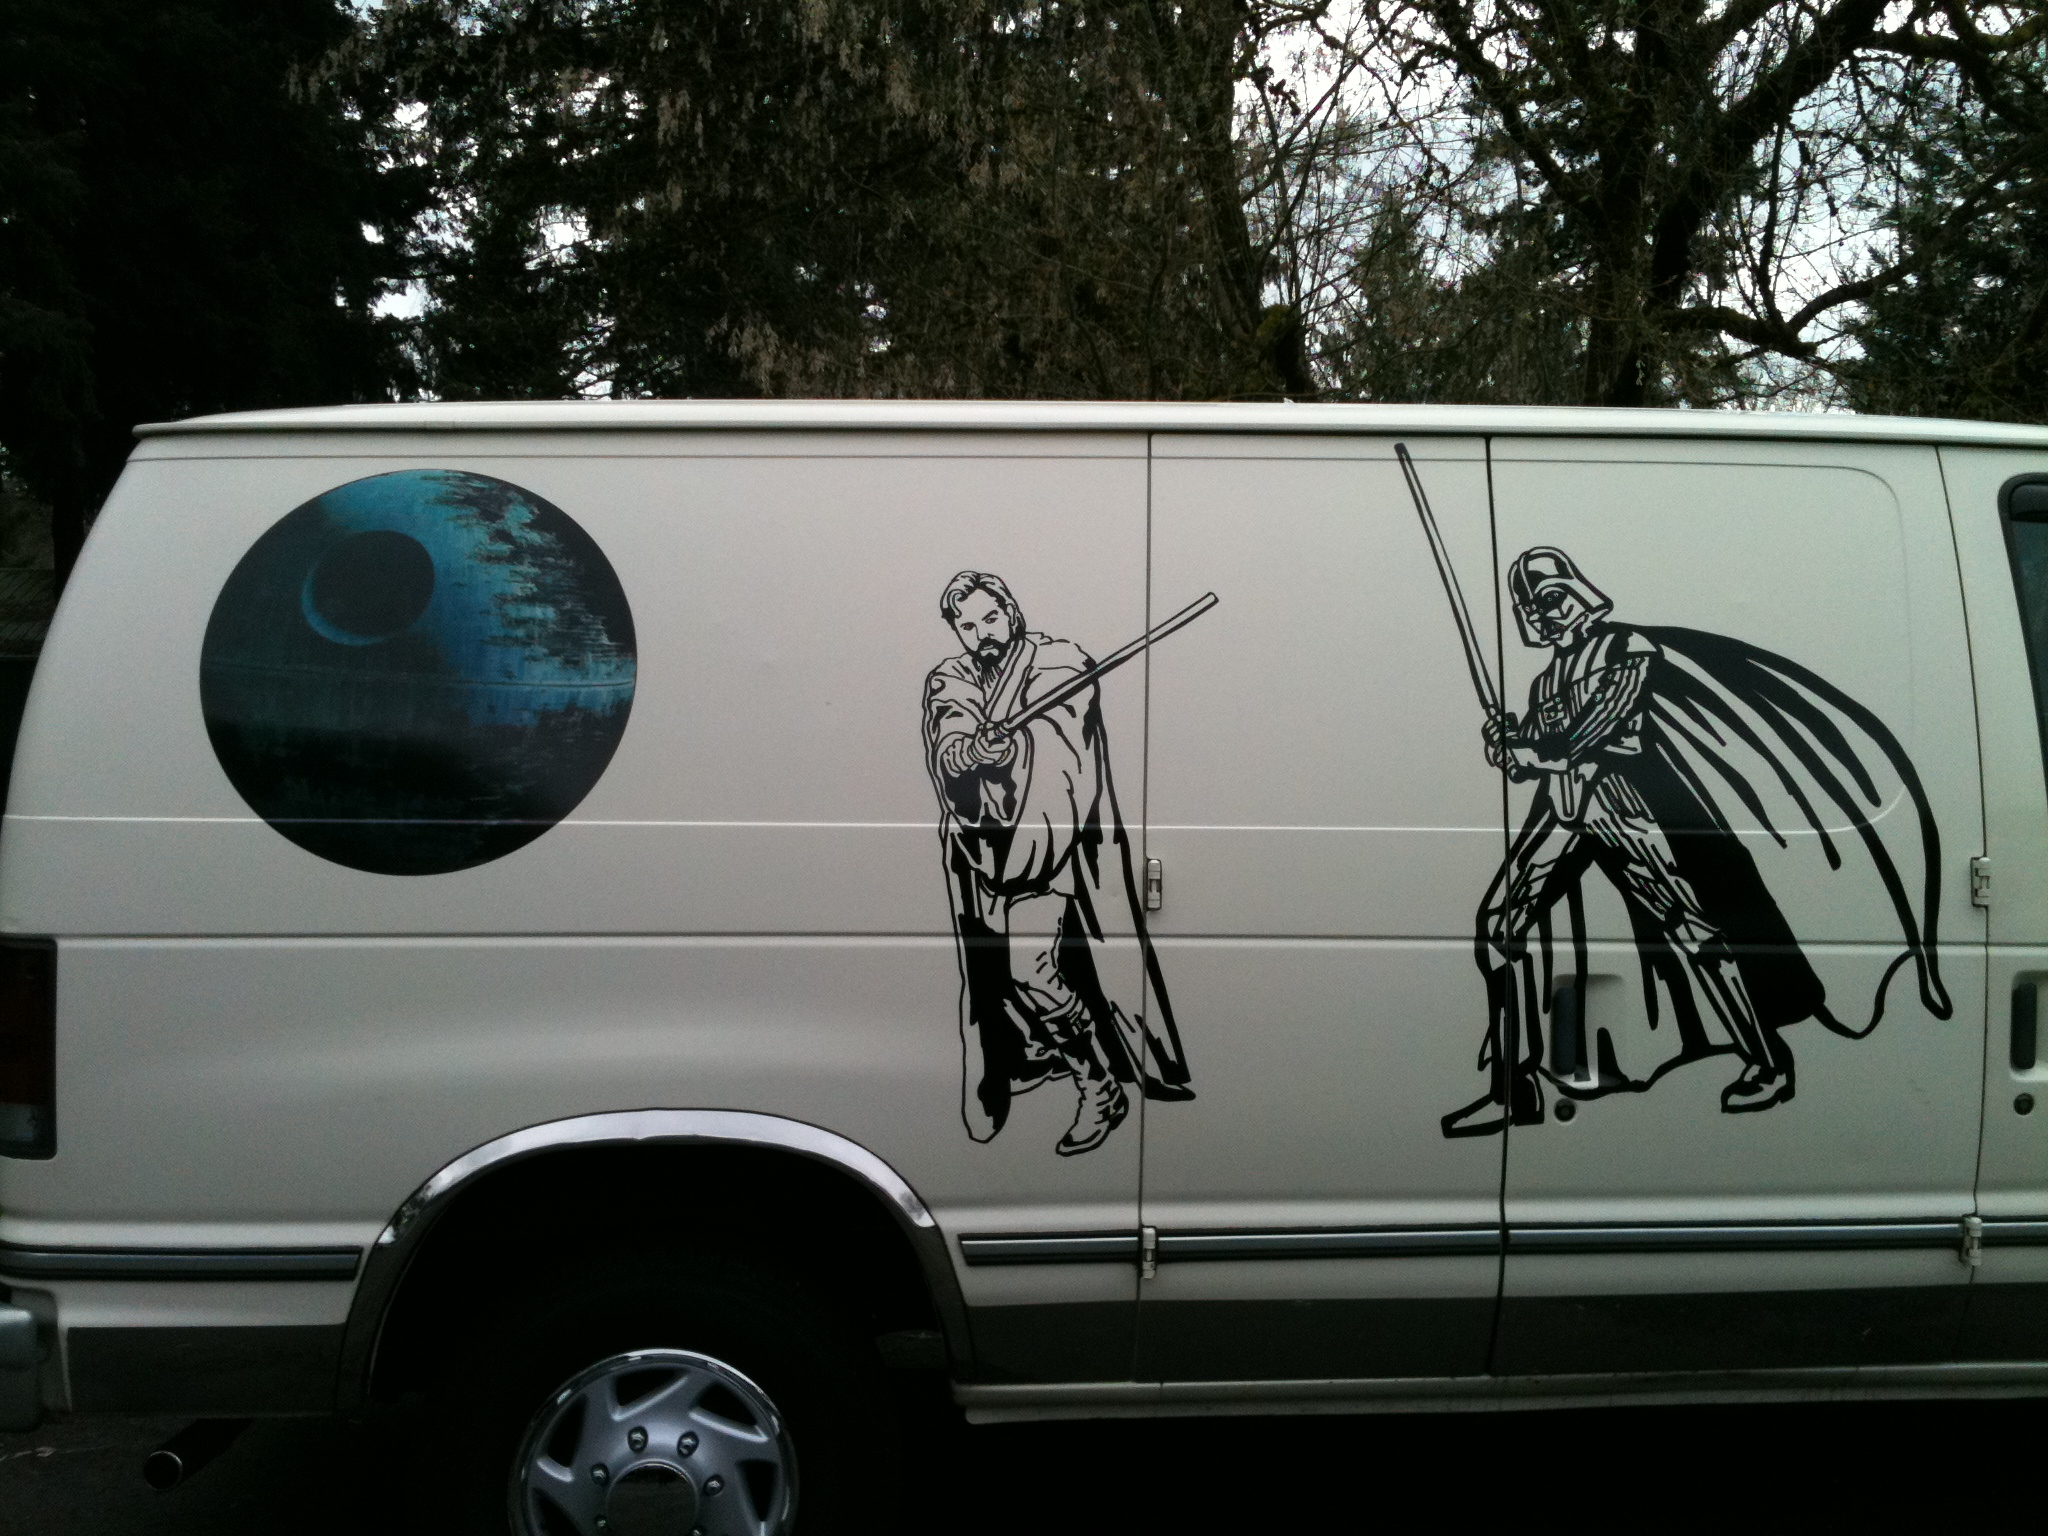 star wars van 003.JPG